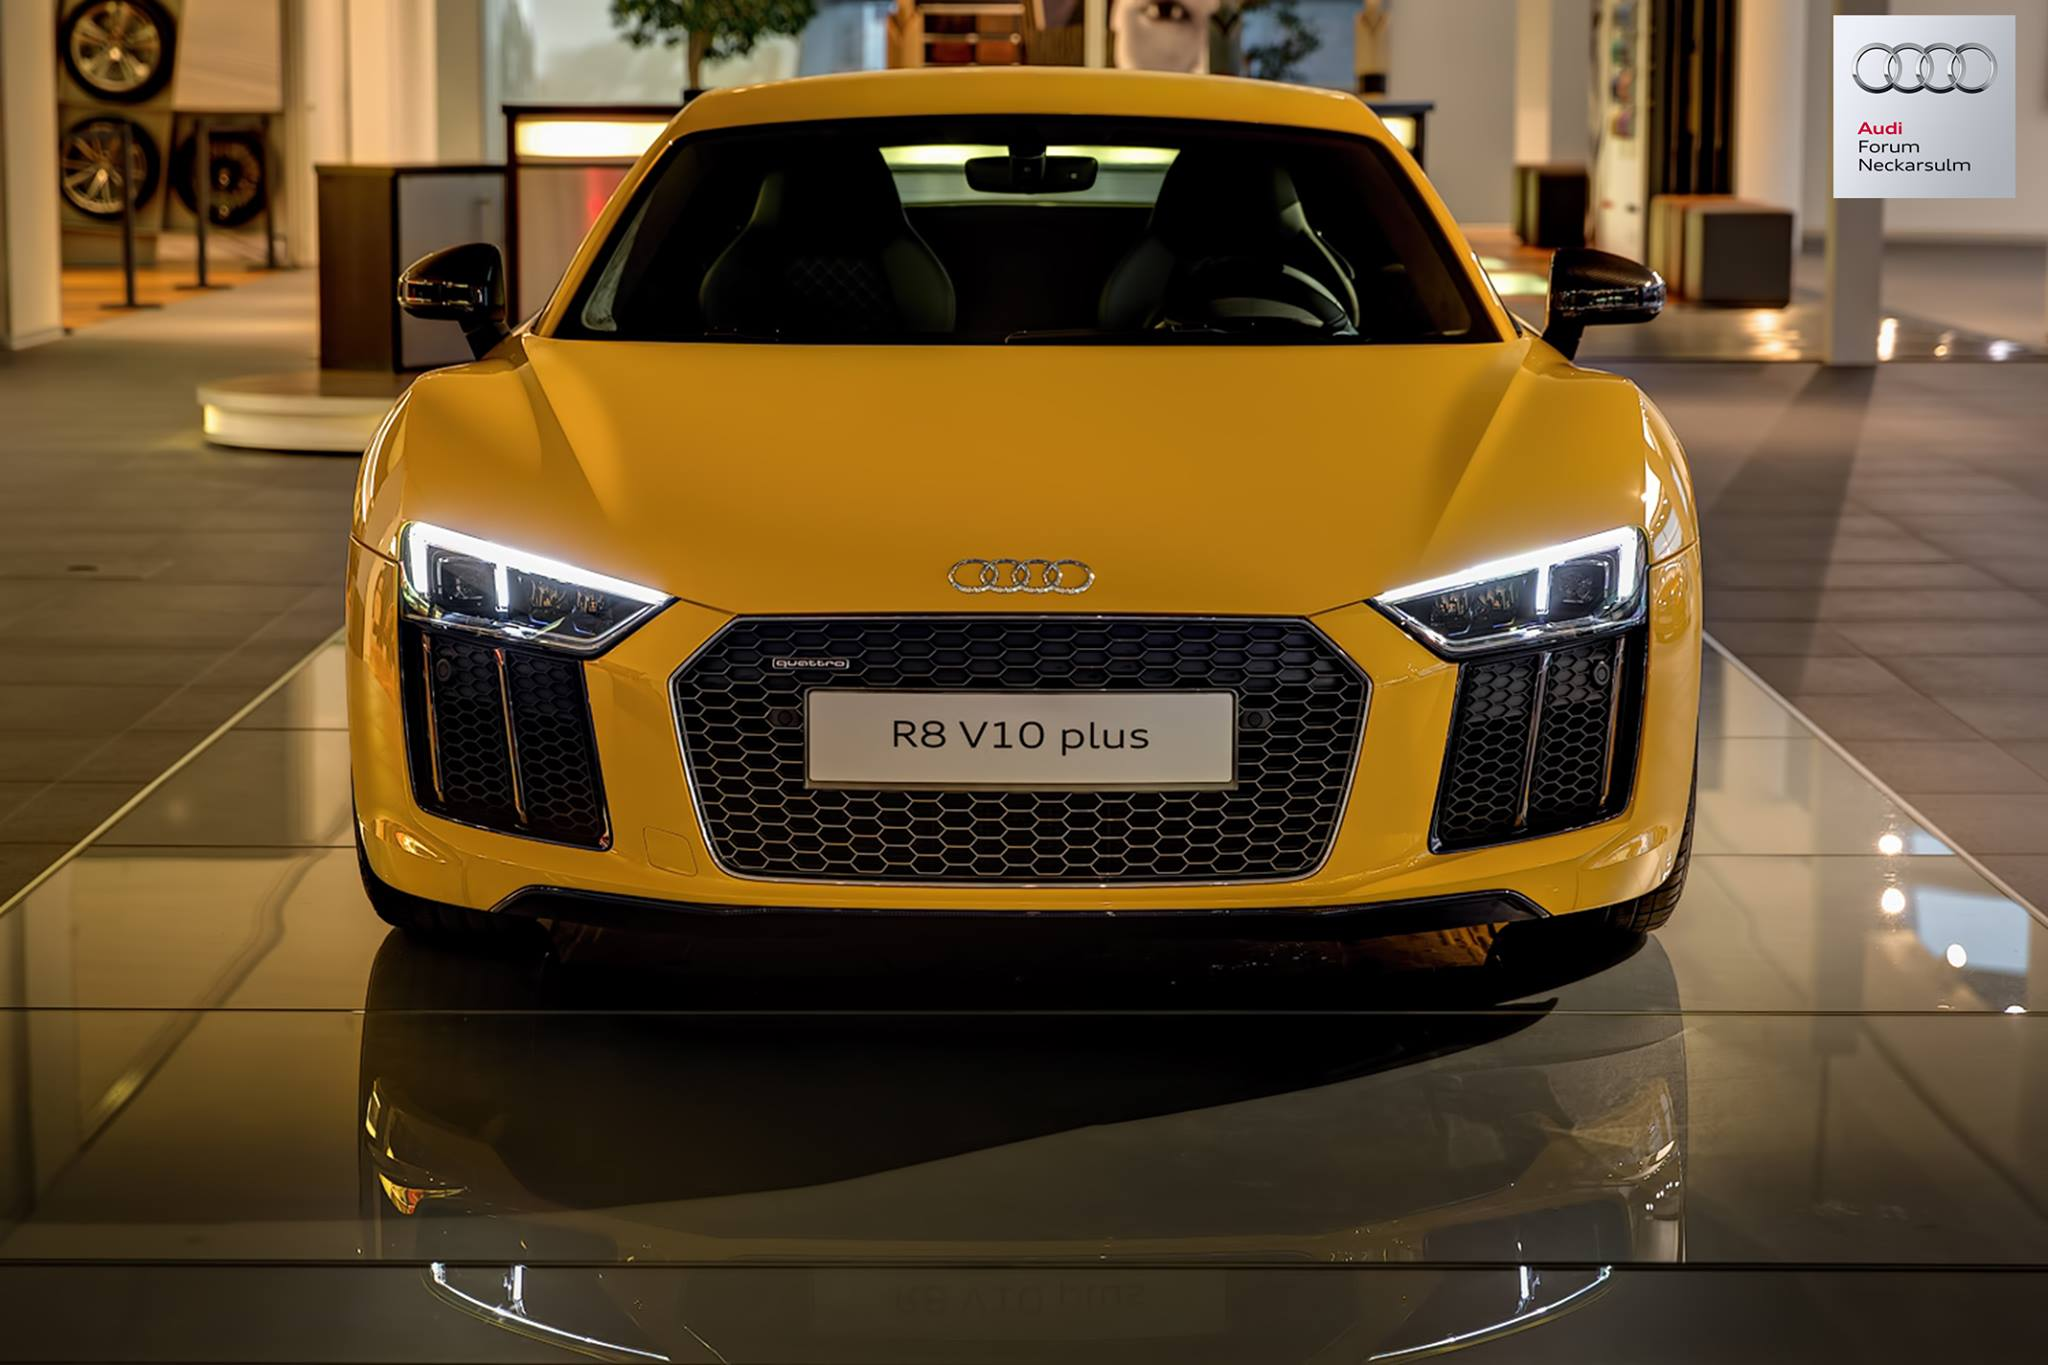 Vegas Yellow 2016 Audi R8 V10 Plus Arrives At Audi Forum Neckarsulm